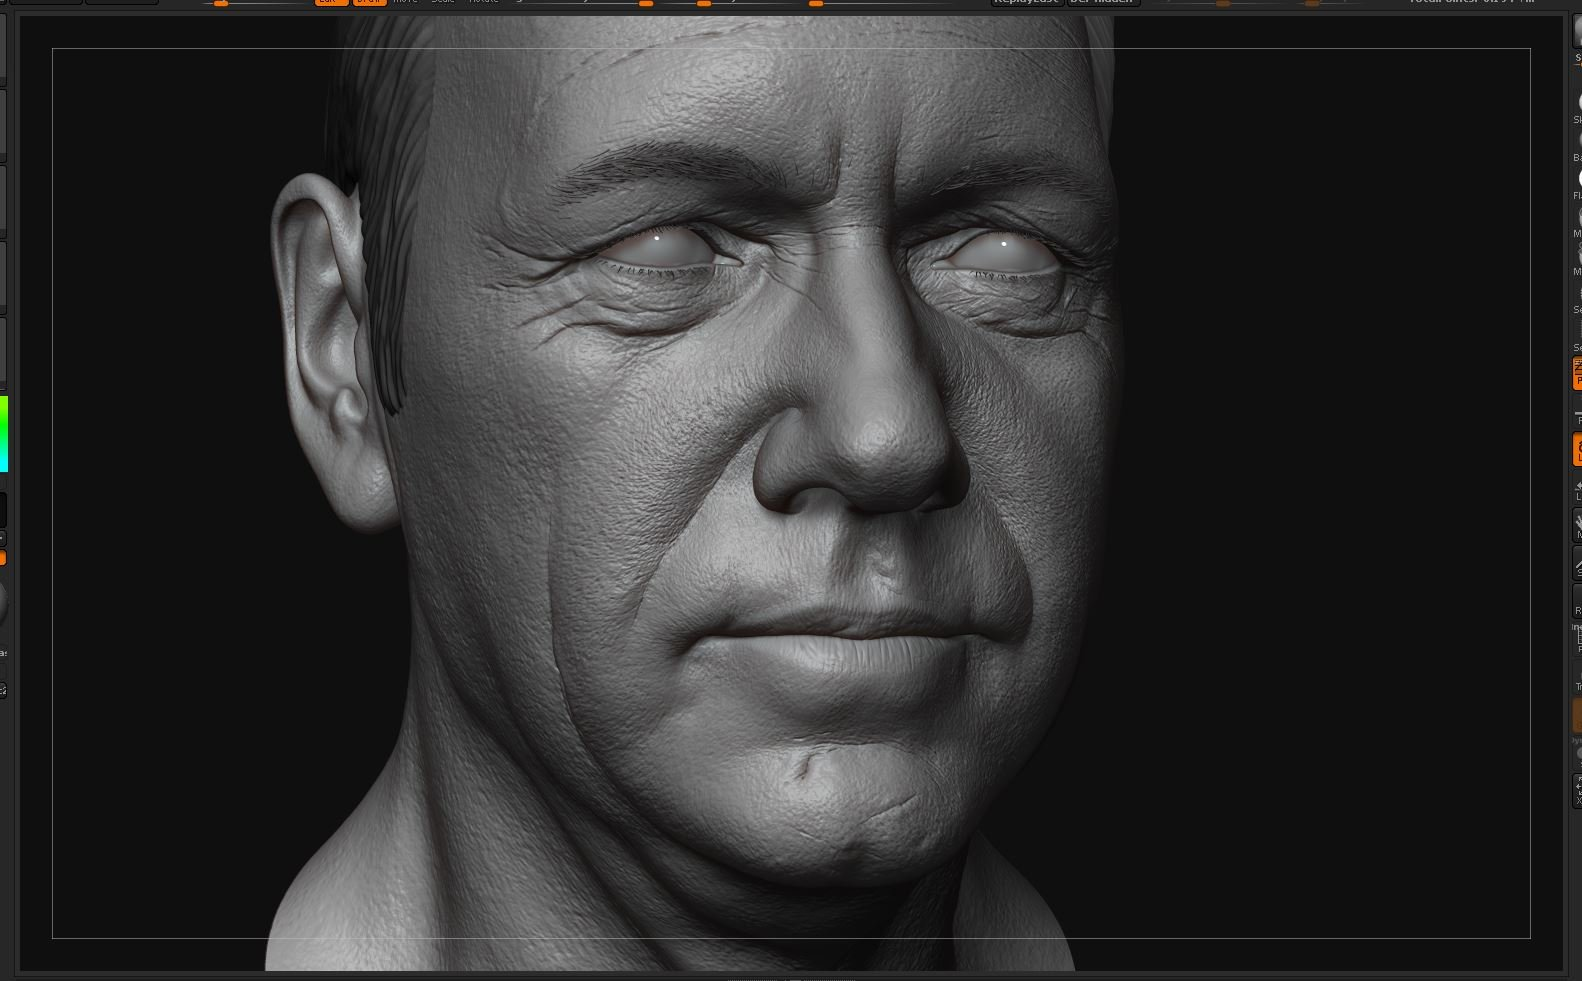 Vincent menier kevinspacey progress 26c